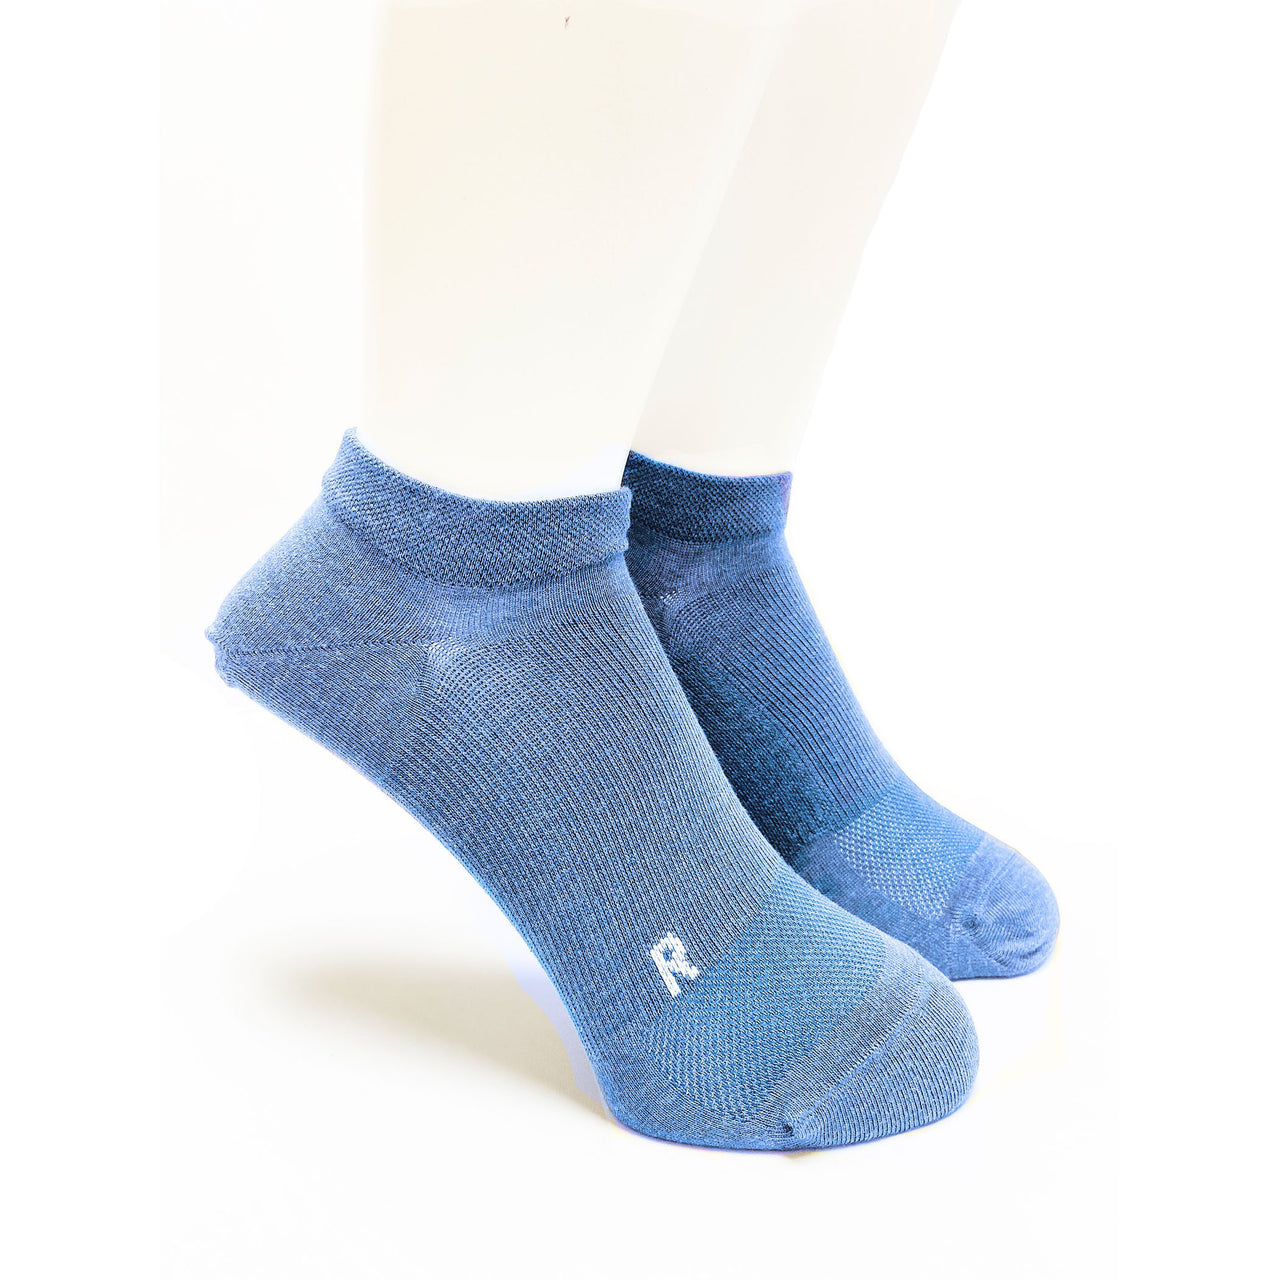 Arch Support Performance Socks | Running | Women | Endurance Blue - CHERRYSTONE